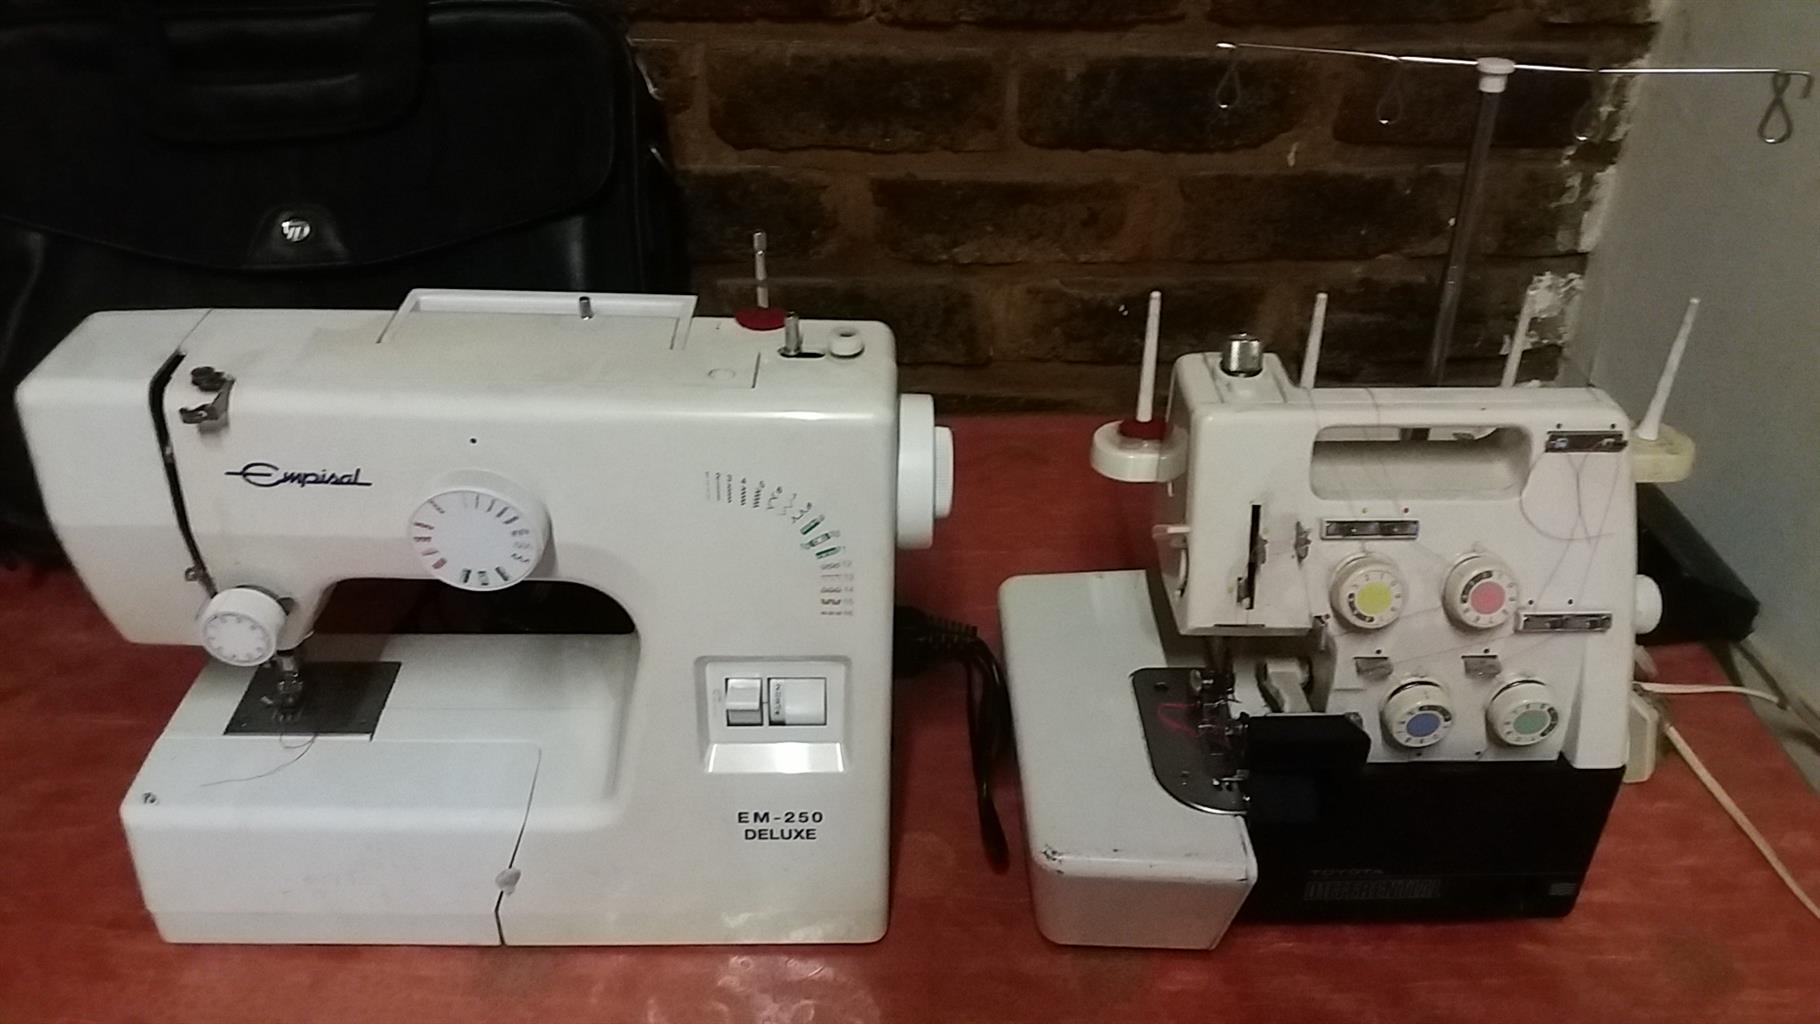 Sewing Machine & Overlocker